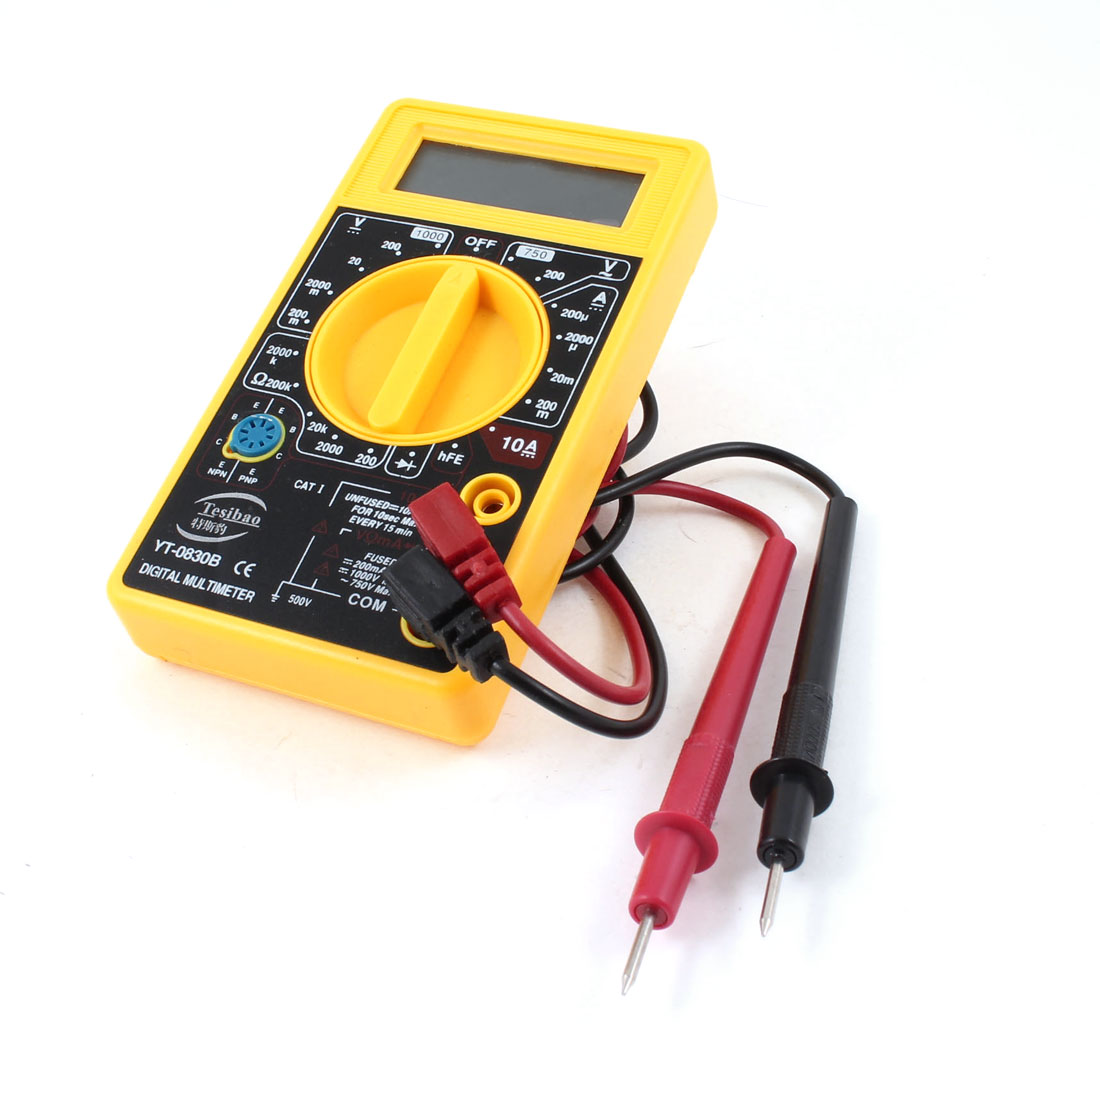 LCD Display DC Voltage Current Measuring Ammeter Ohm Digital Multimeter